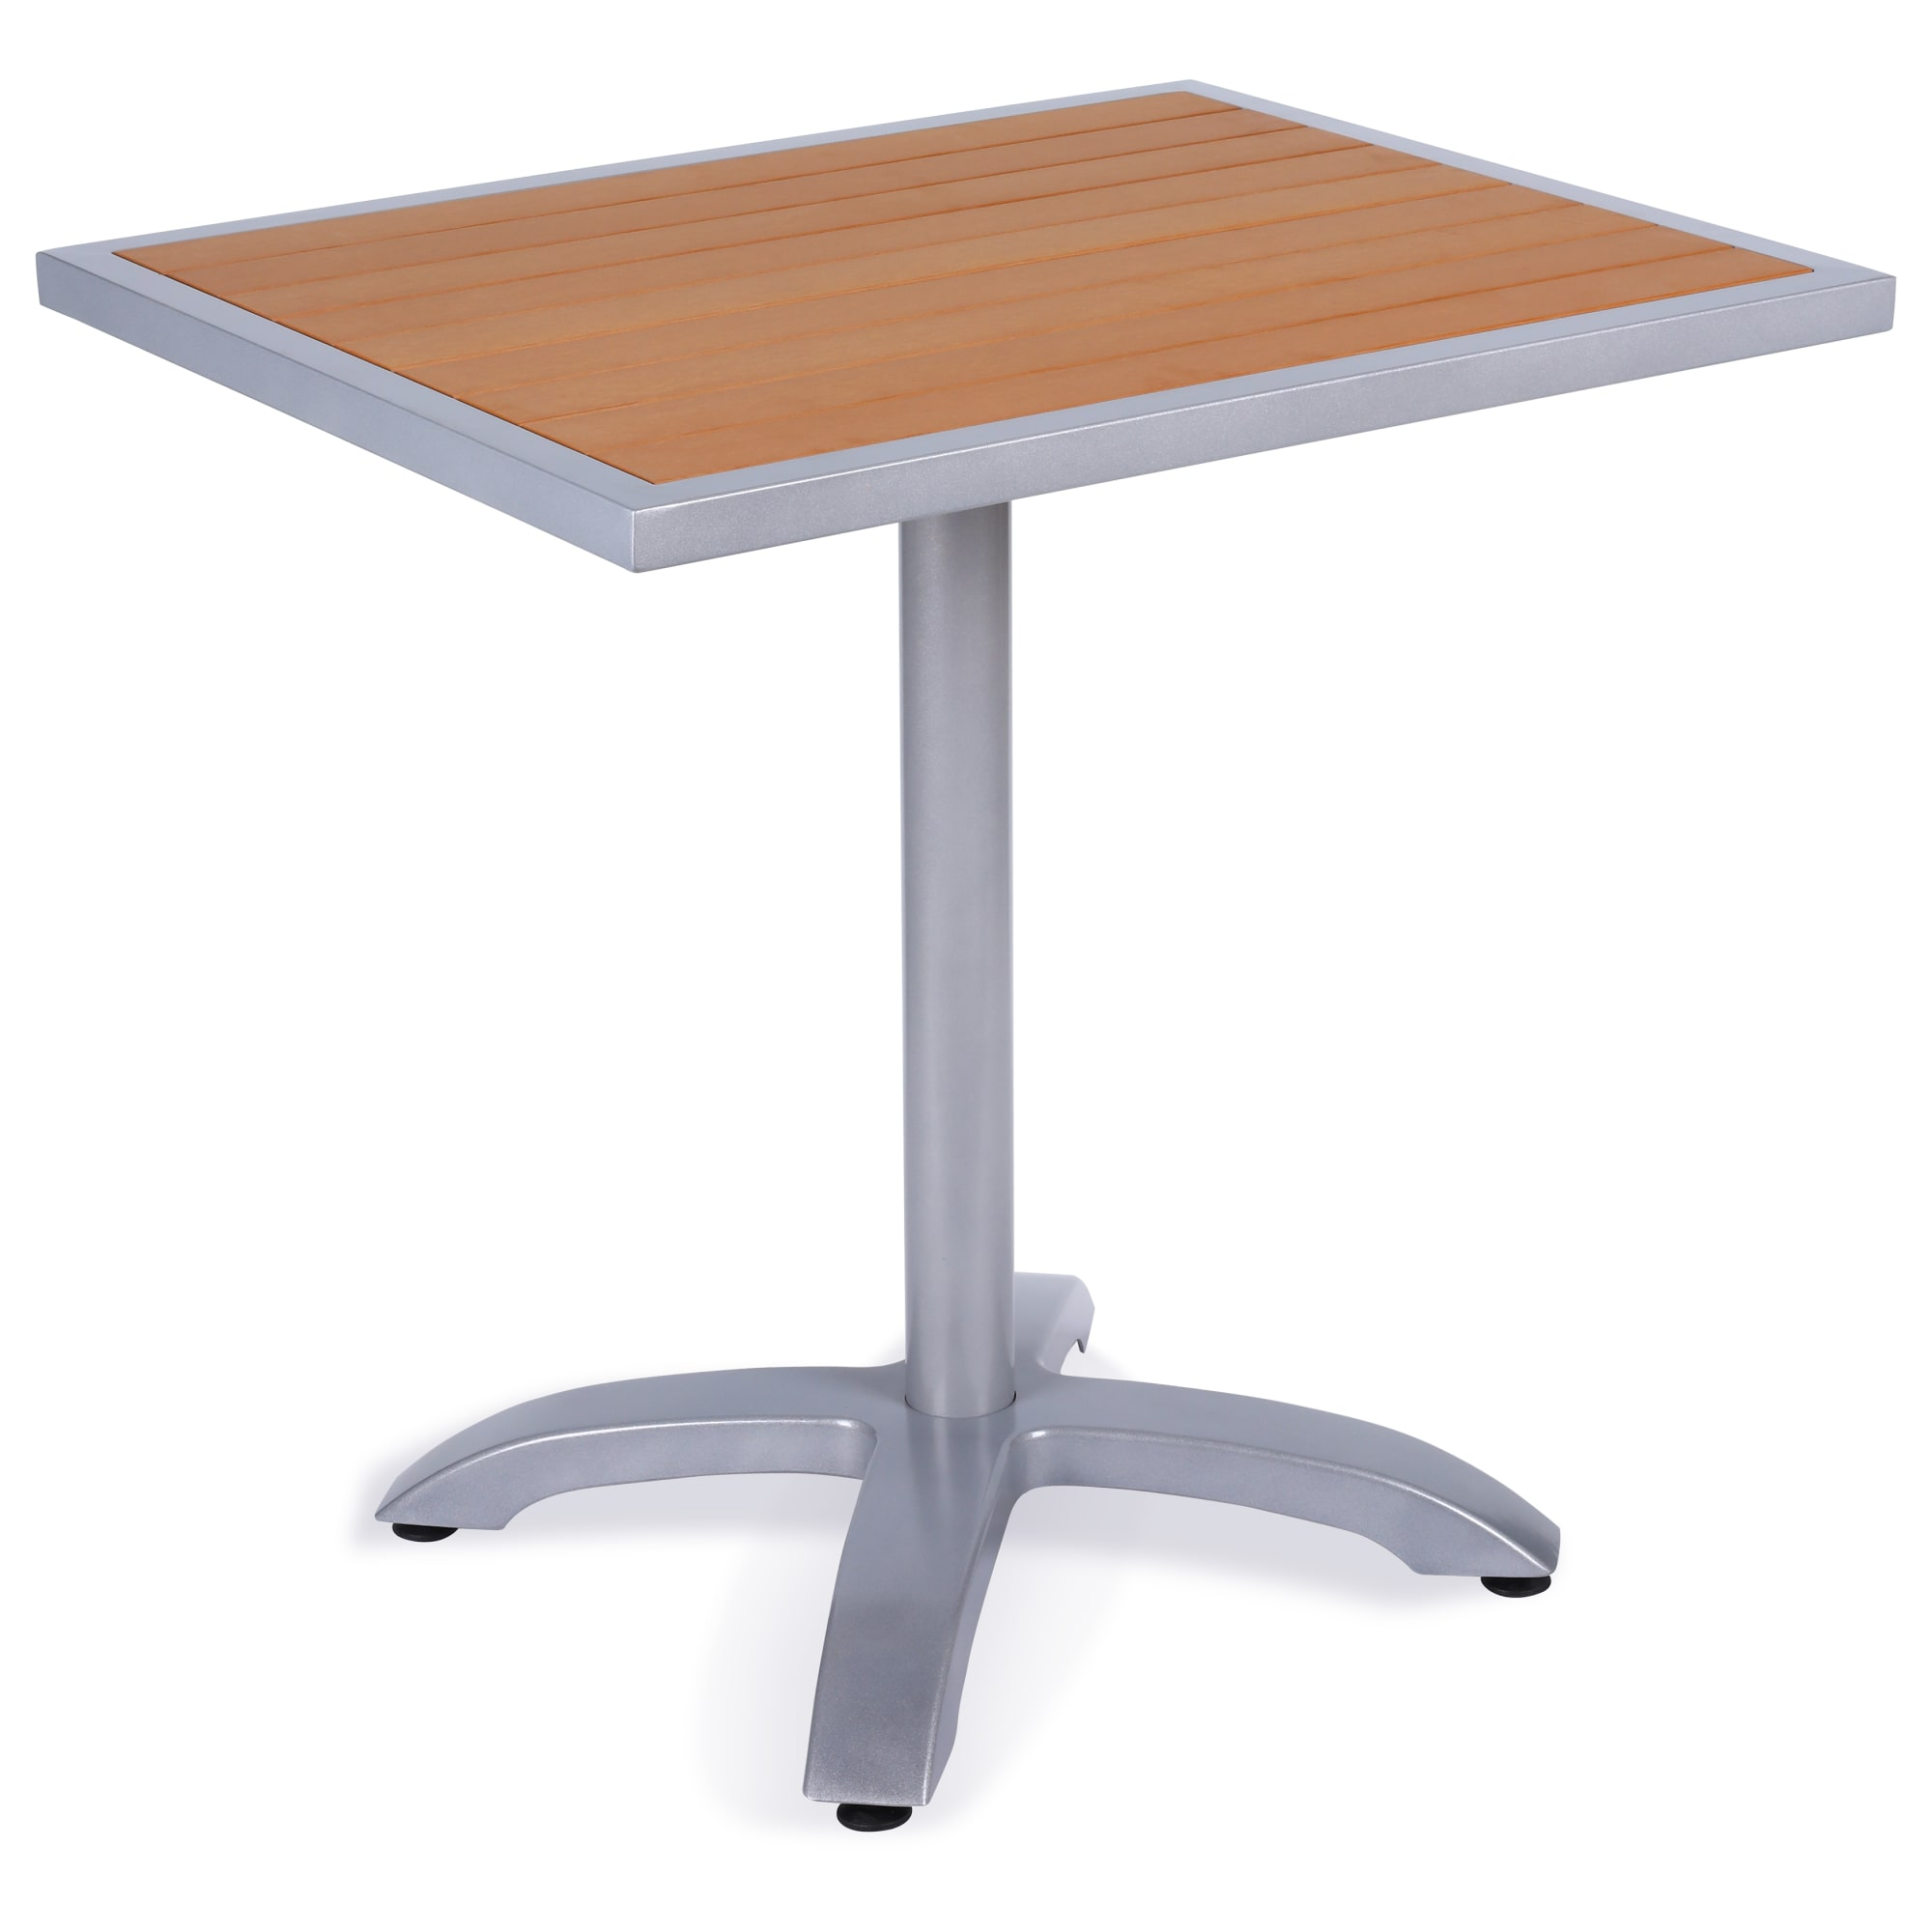 Aluminum Patio Table with Plastic Teak Top